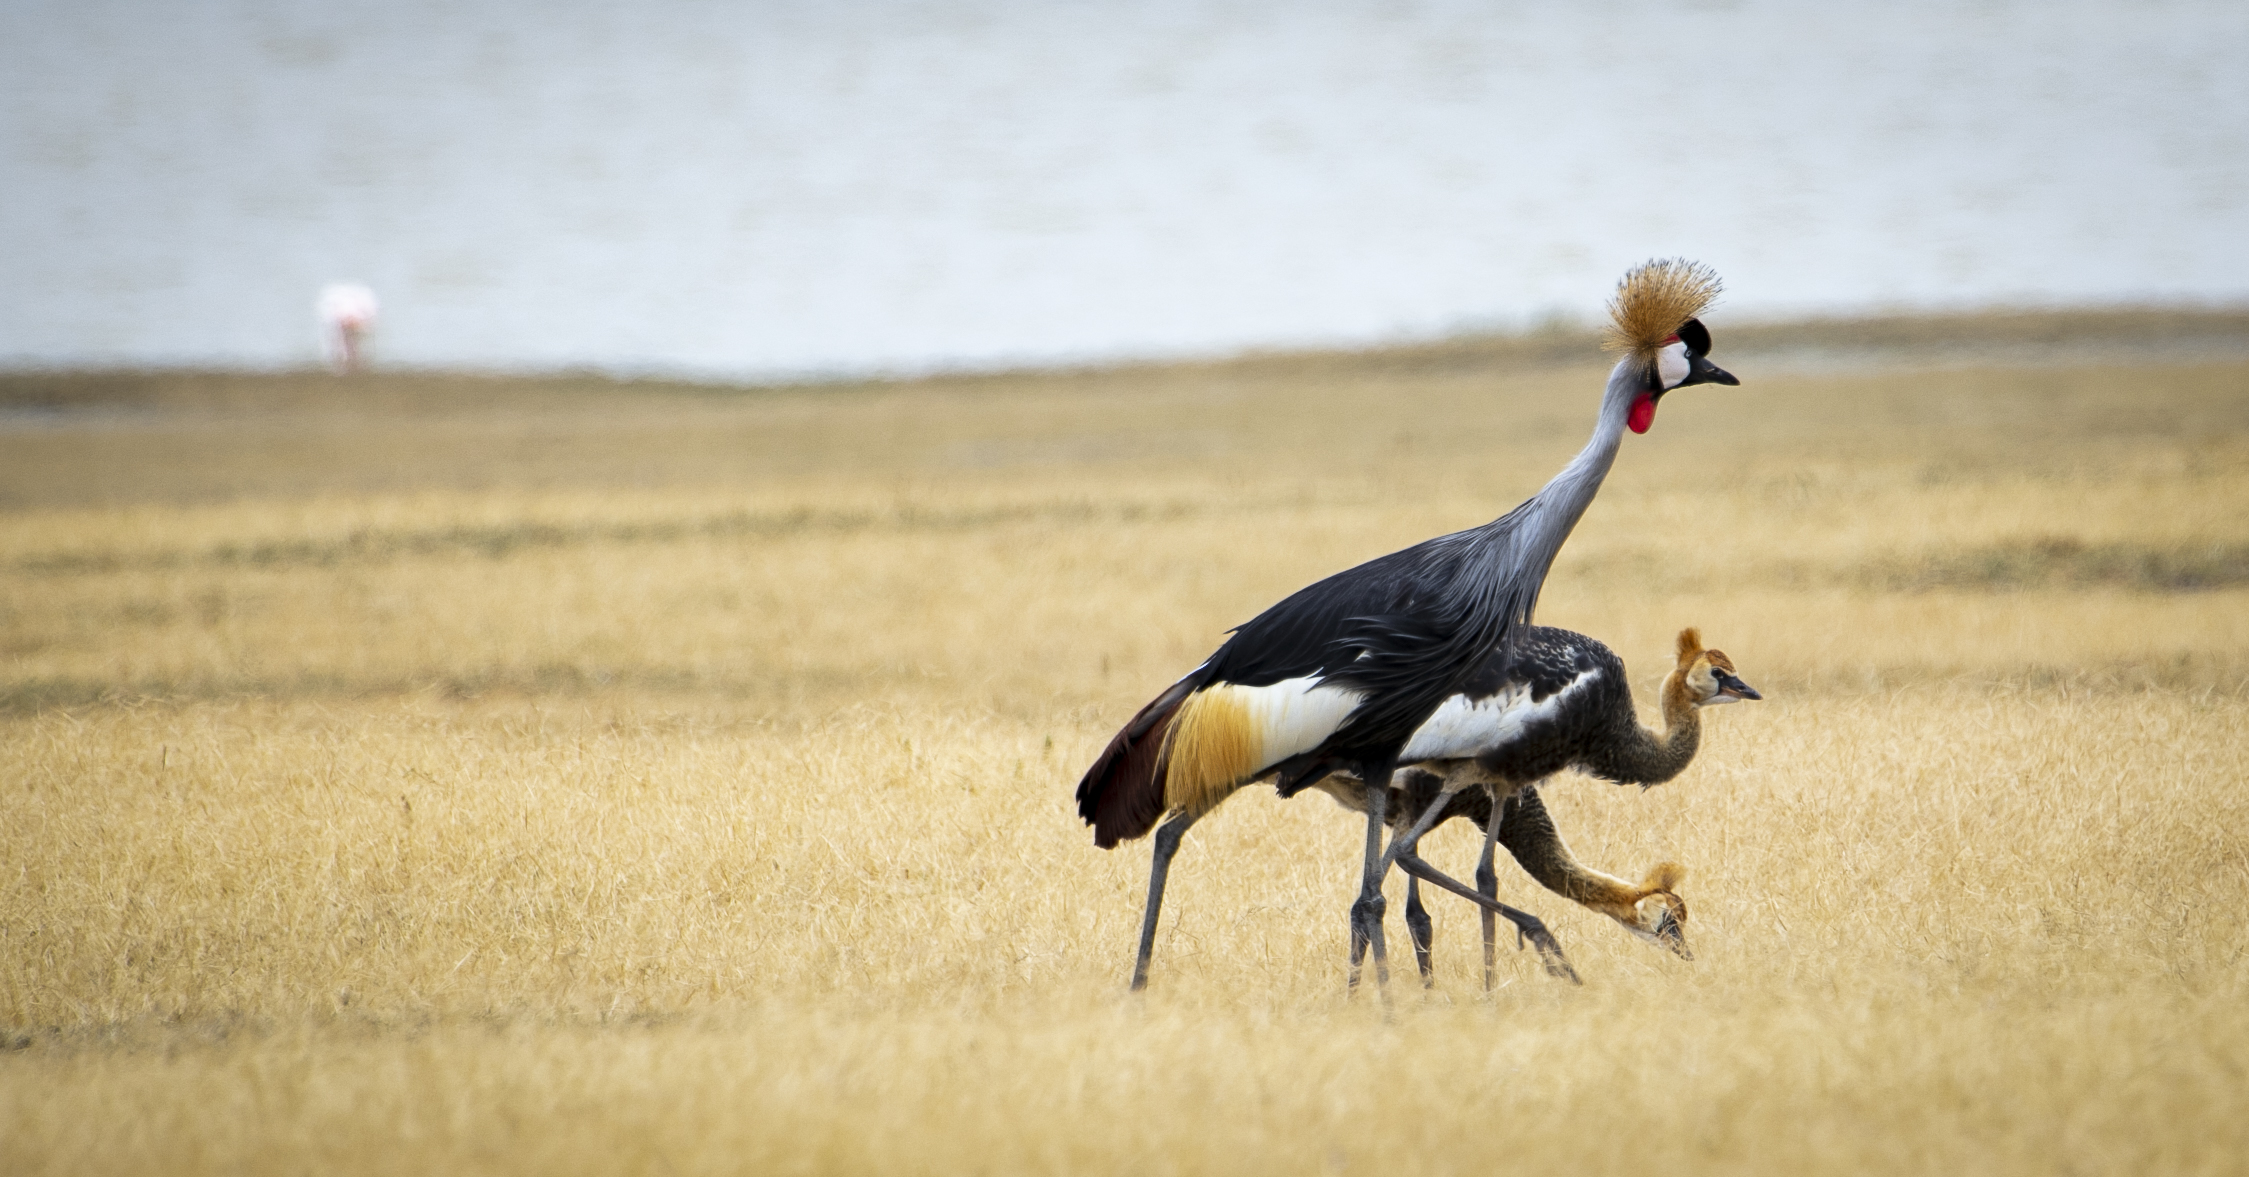 African Adventure - 31 July '18 - Ngorongoro (Crater) Conservation Area to Meserani, Tanzania - 048.JPG